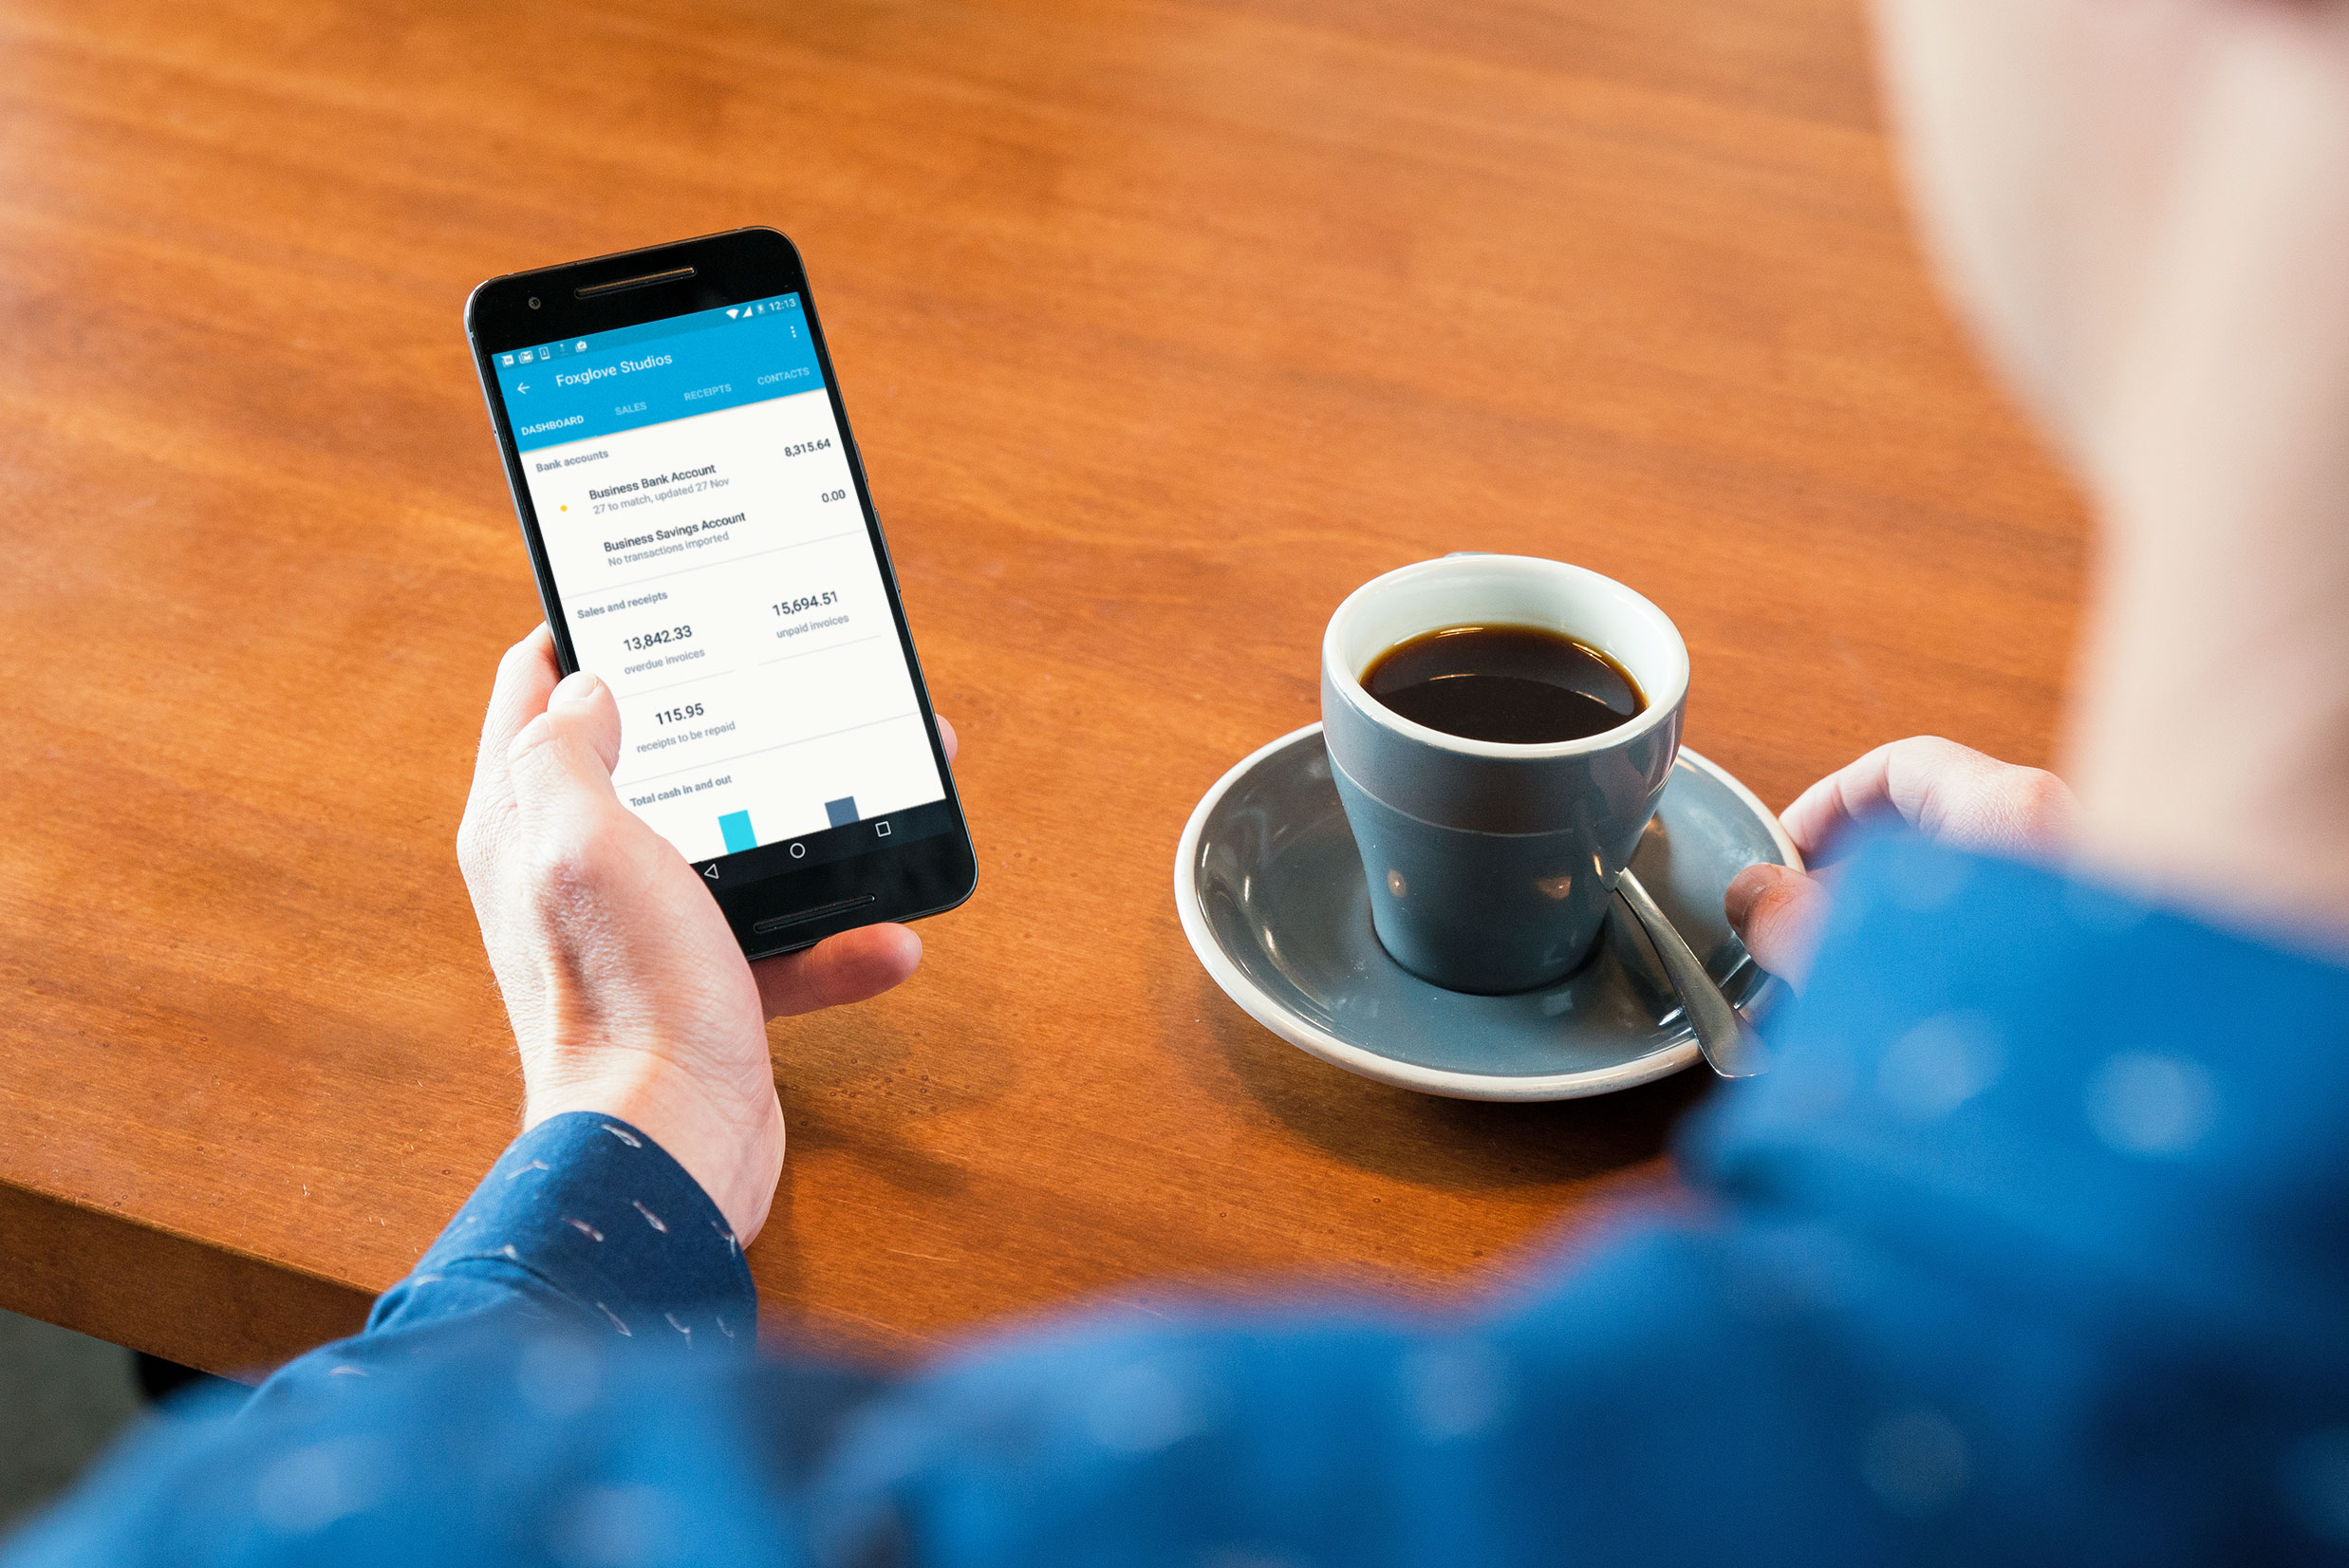 Xero on Android device